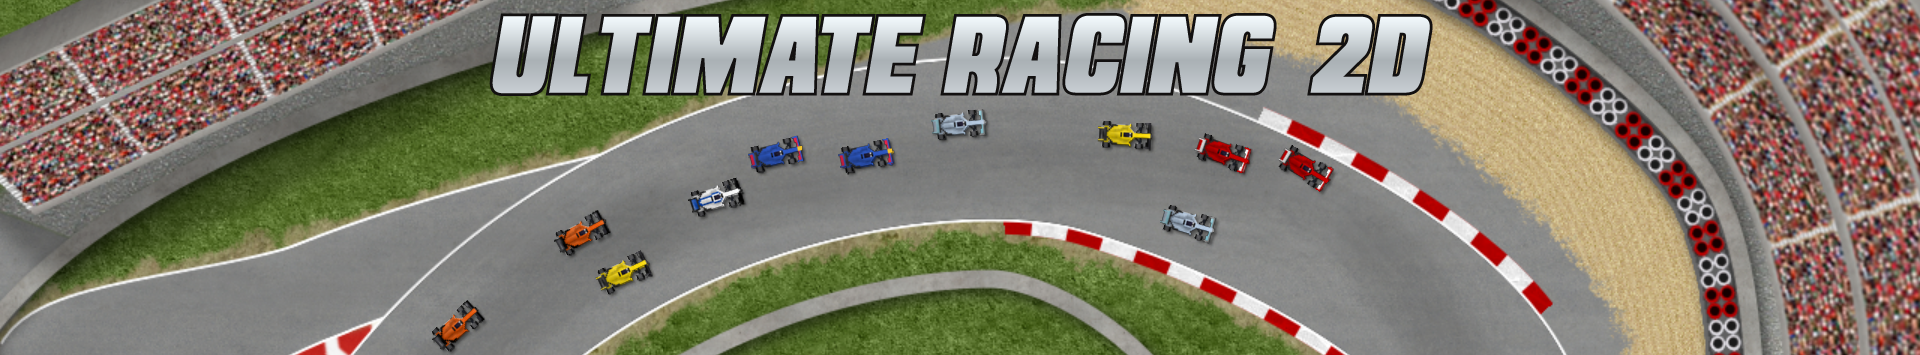 Ultimate Racing 2D header